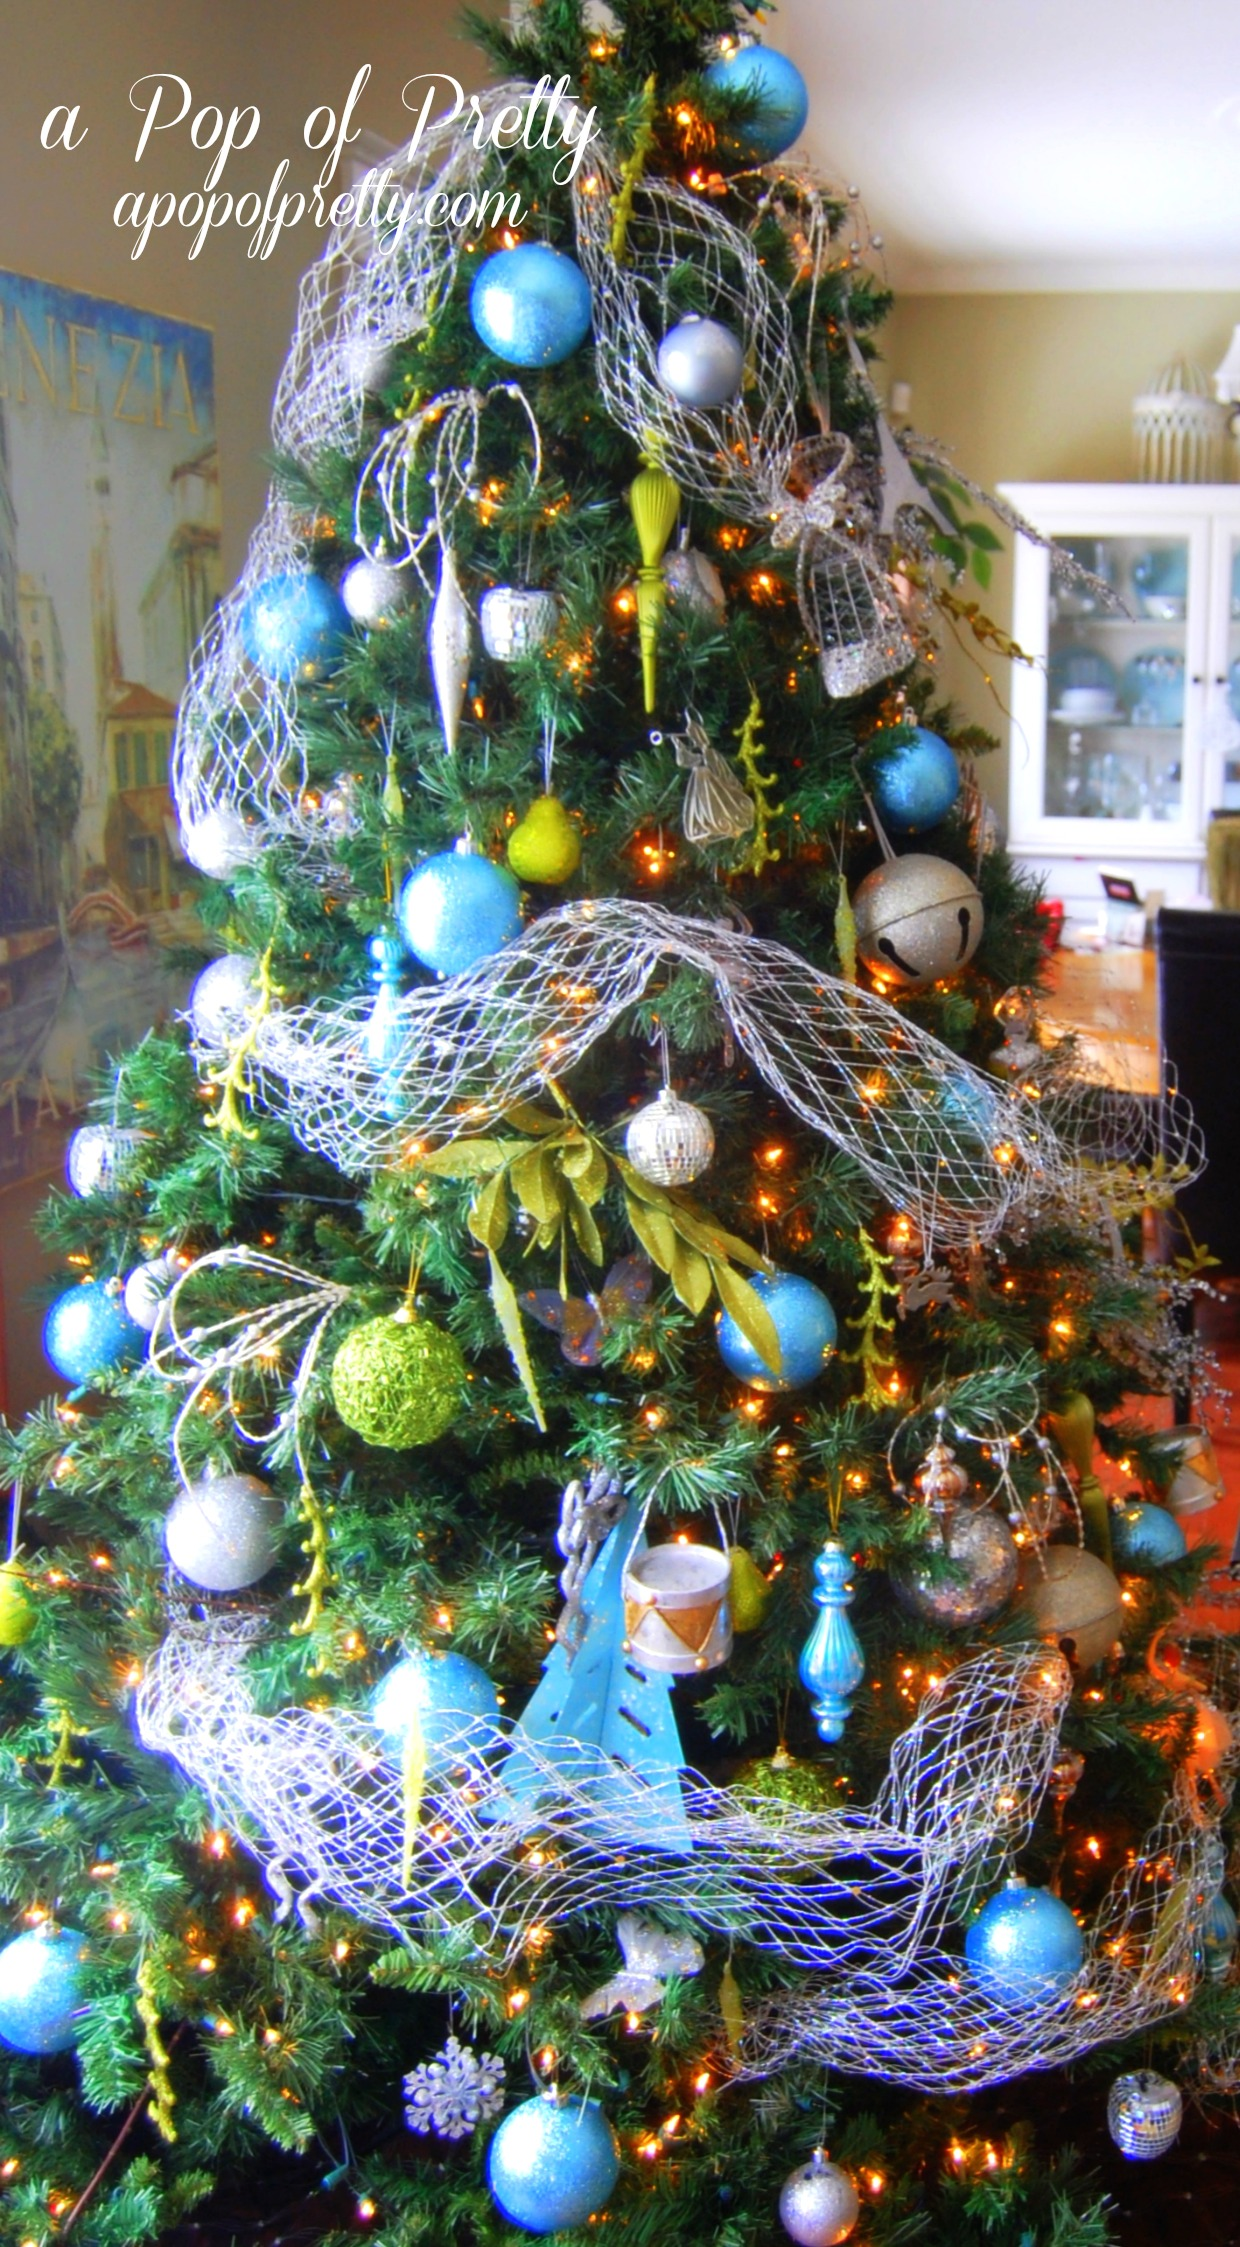 christmas tree 2009 f07b2beb7c7021c56c3e55e72da69aa0 c6fd9af5177b73357d545783149a3788 16544_02oct09_turquoise_ornaments - Themed Christmas Tree Decorating Kits